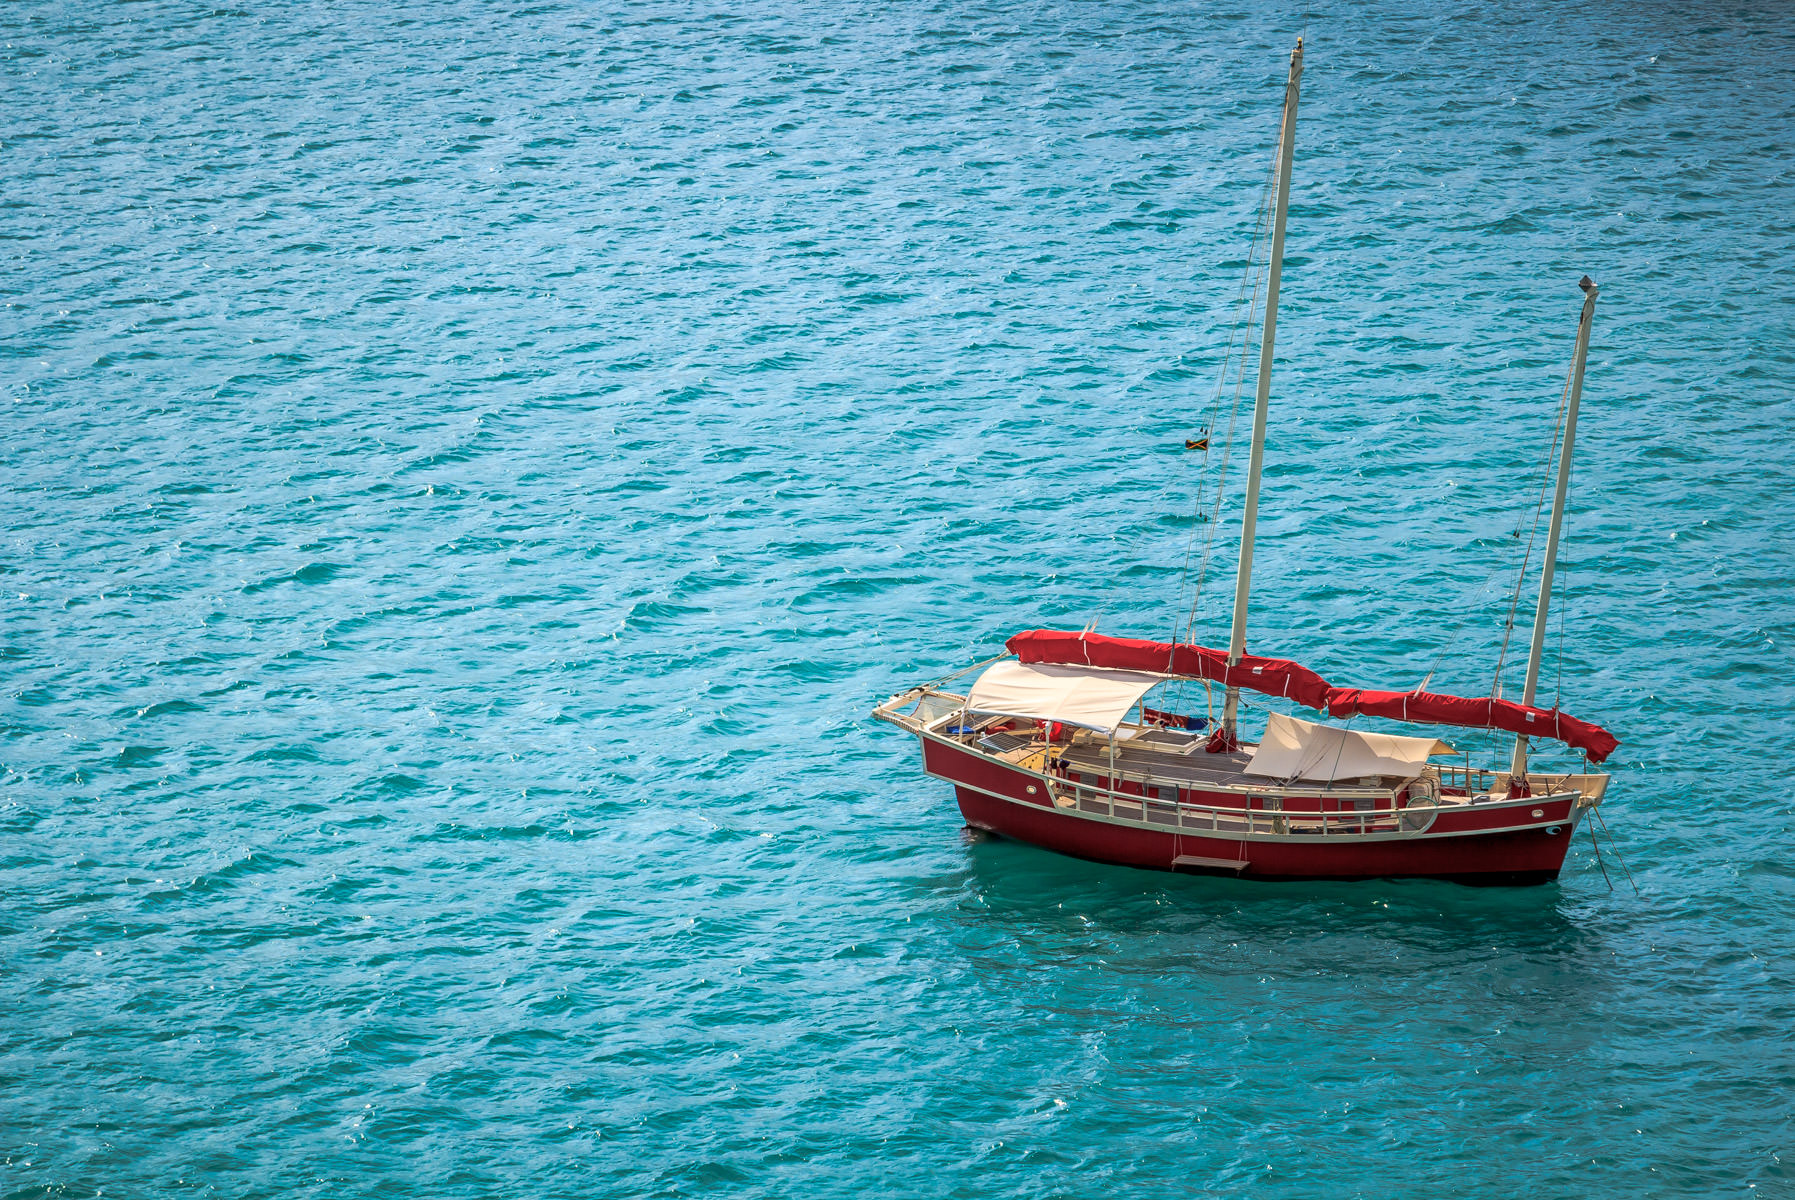 A red sailboat spotted at Montego Bay, Jamaica.